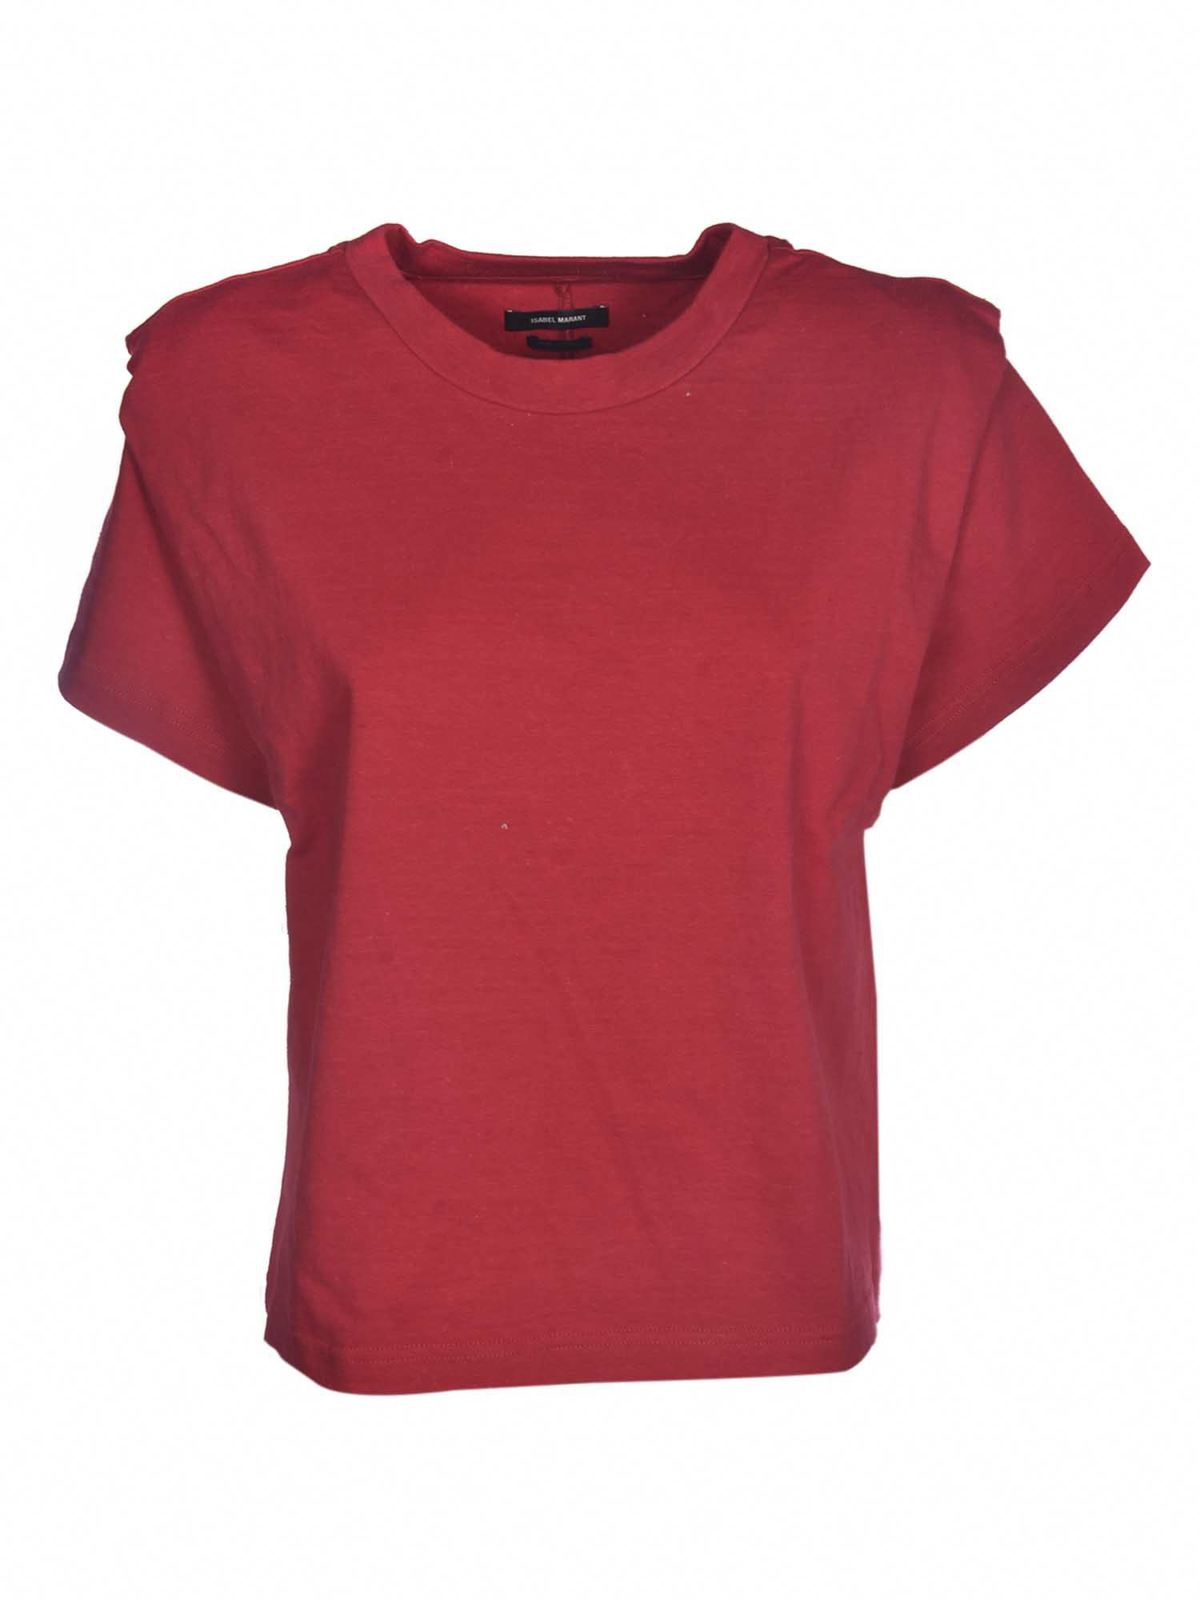 Isabel Marant ZELITOS T-SHIRT IN RED